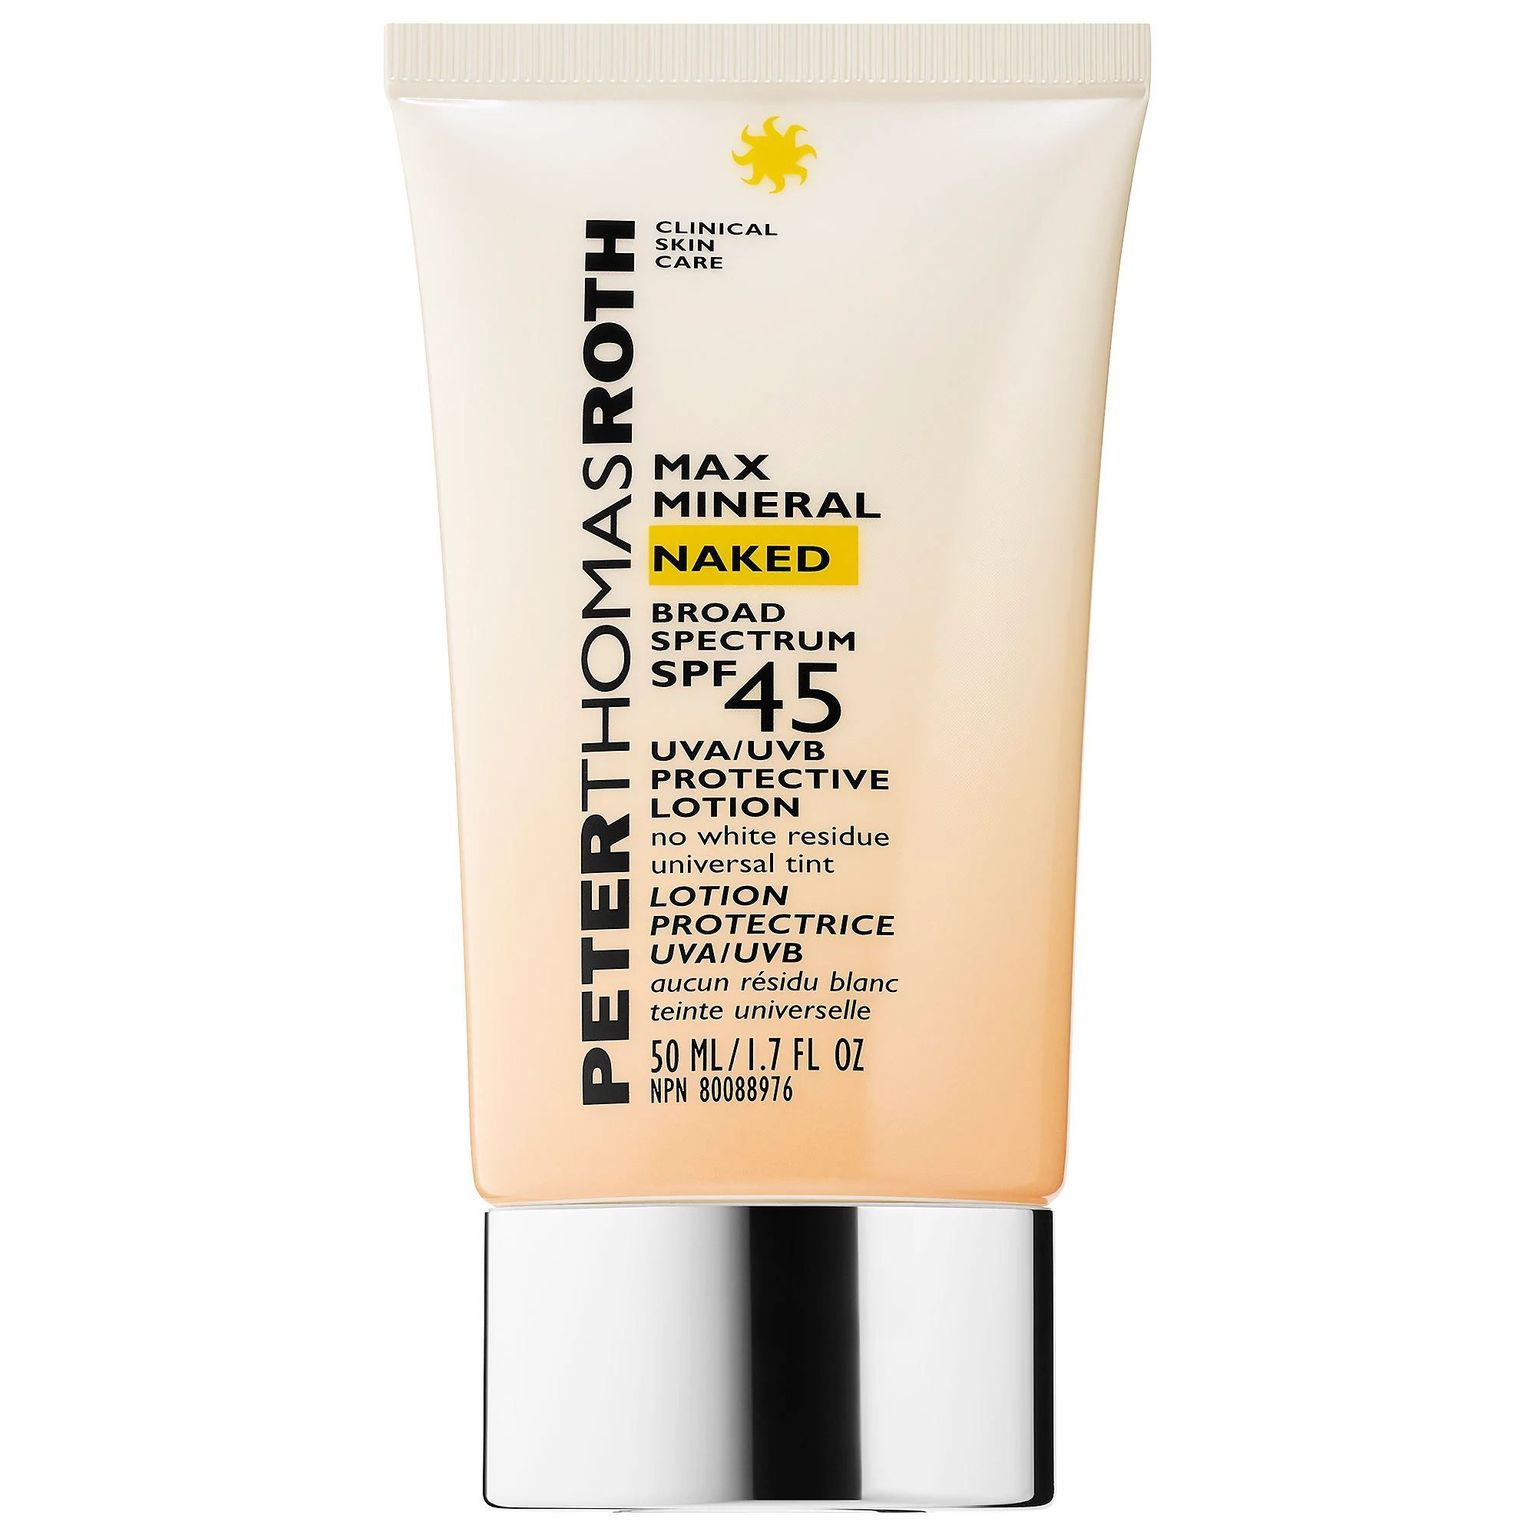 Max Mineral Naked Broad Spectrum SPF 45